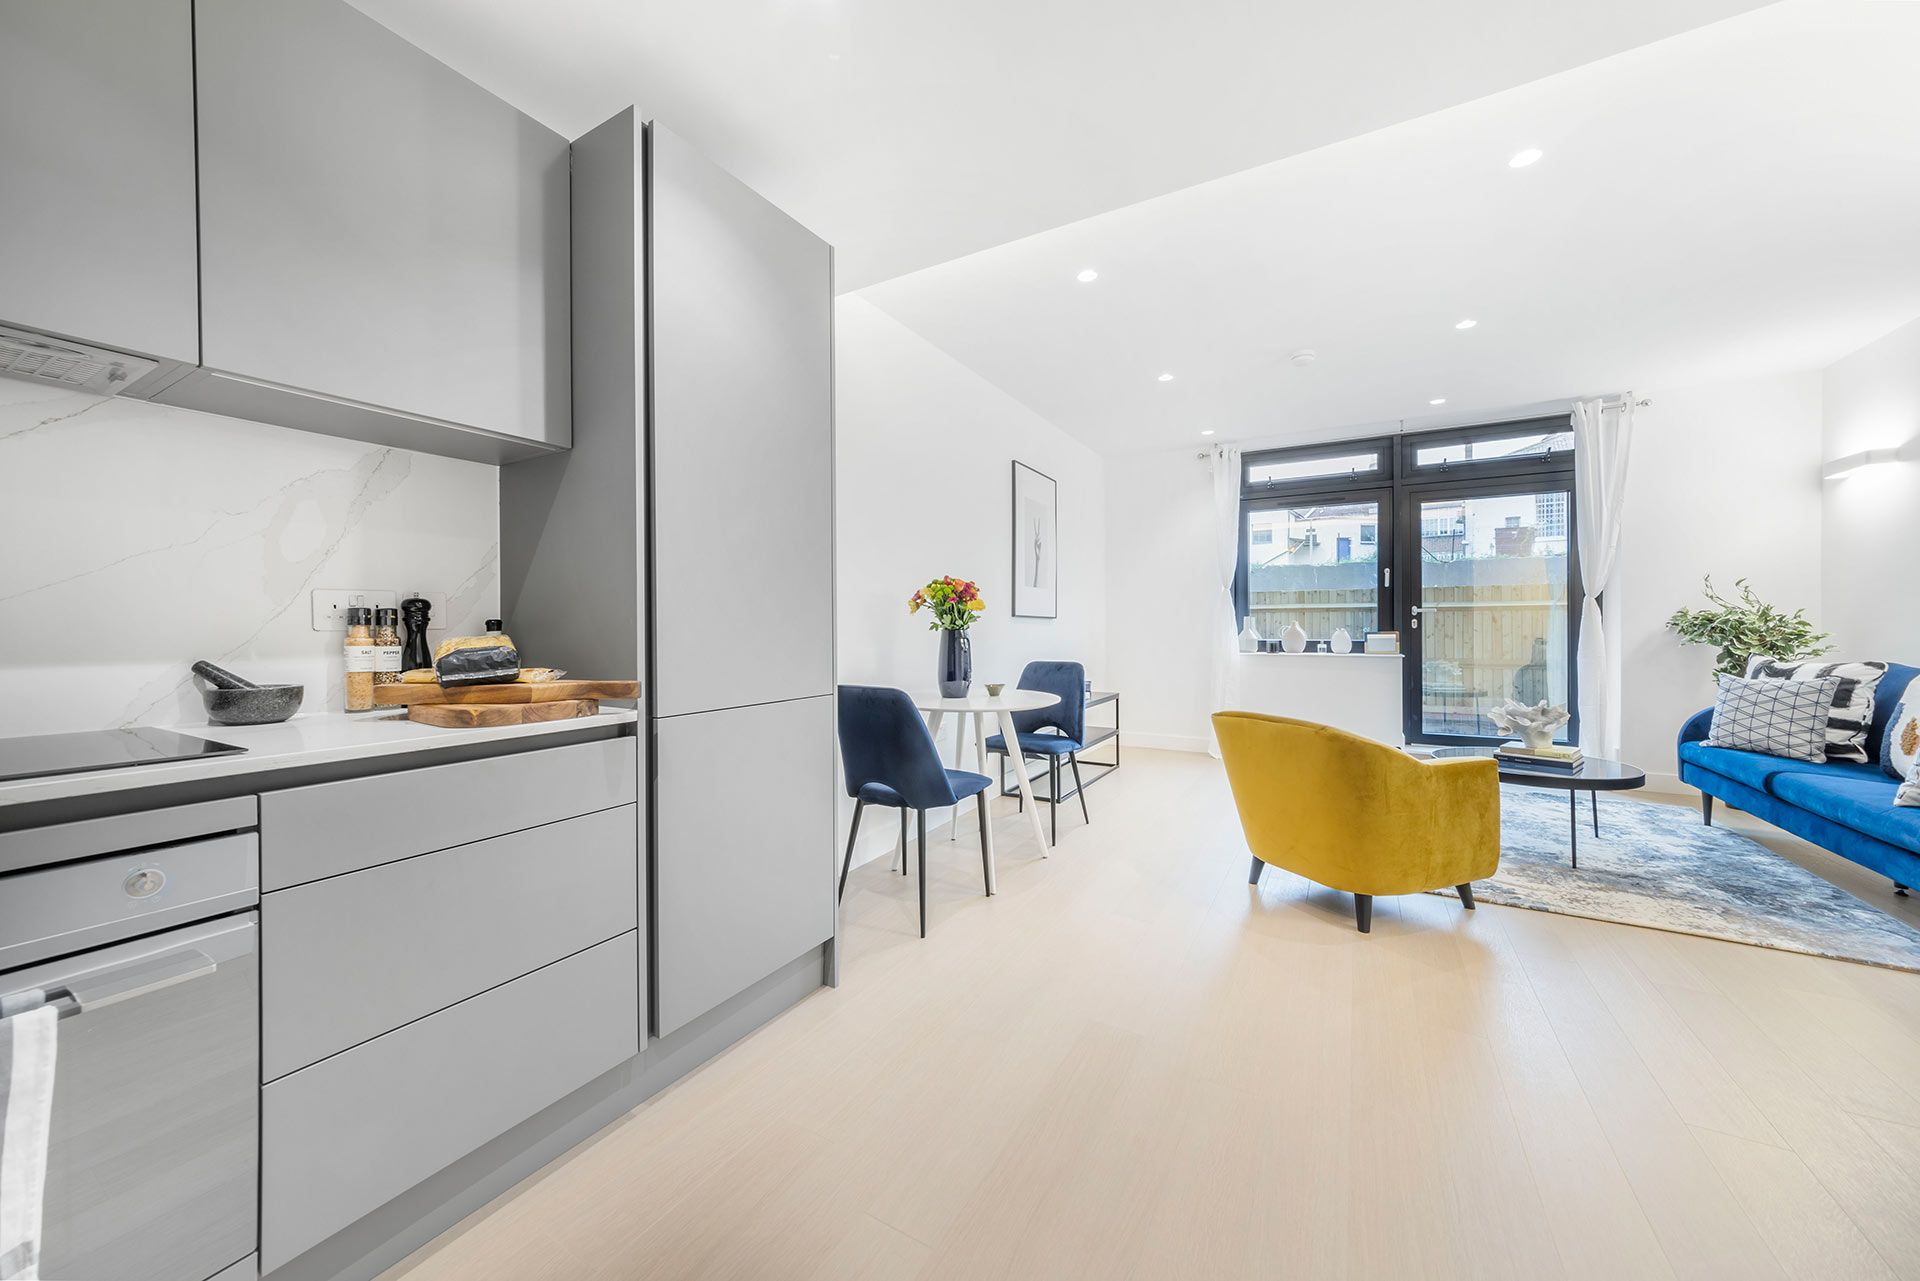 2 Bedroom apartment to rent in London SKI-FH-0042